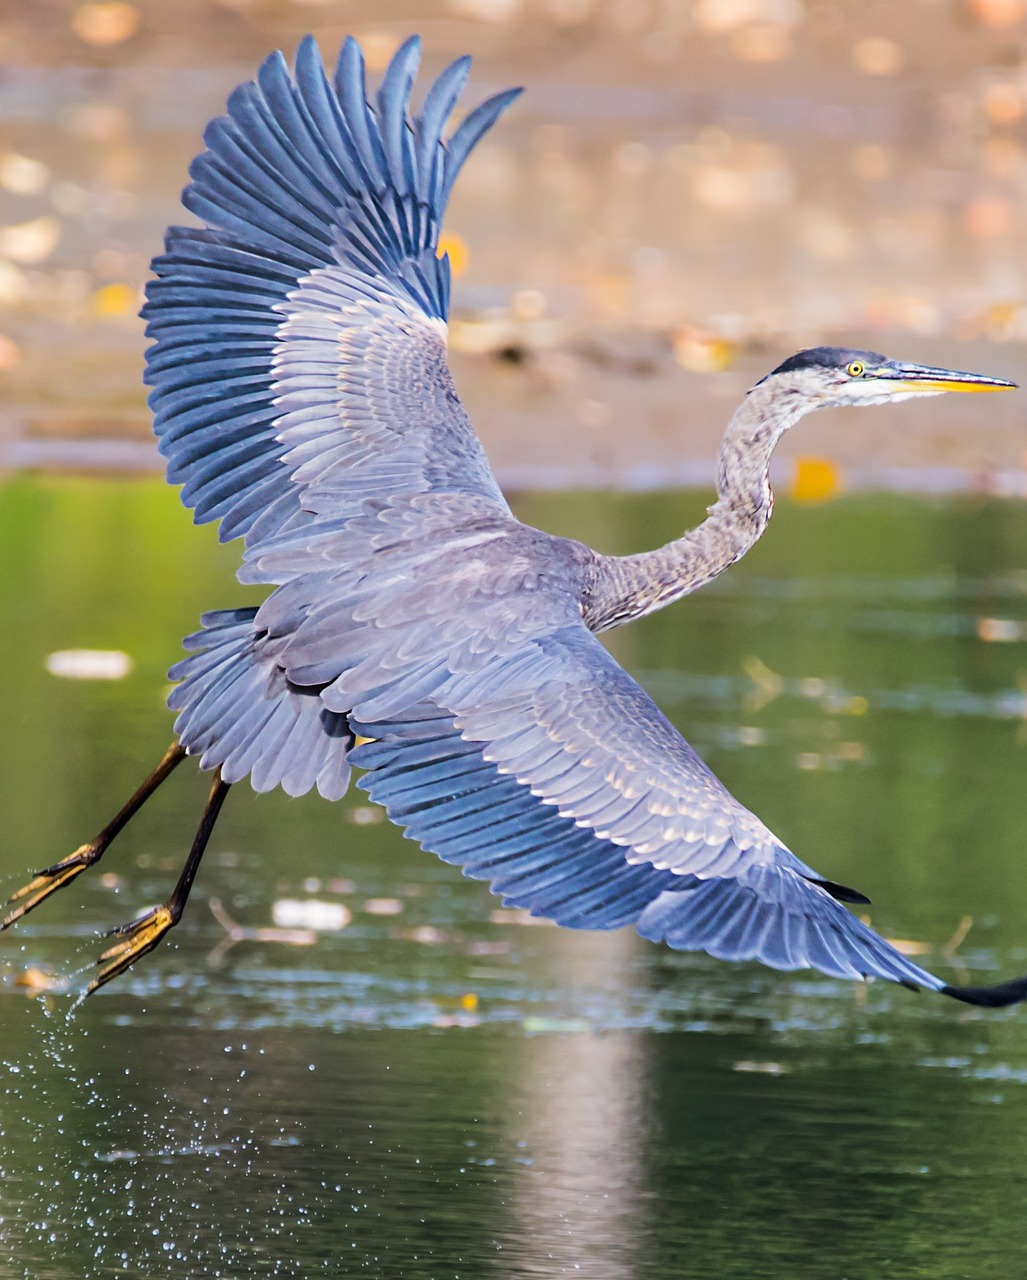 A heron's amazing lift off.